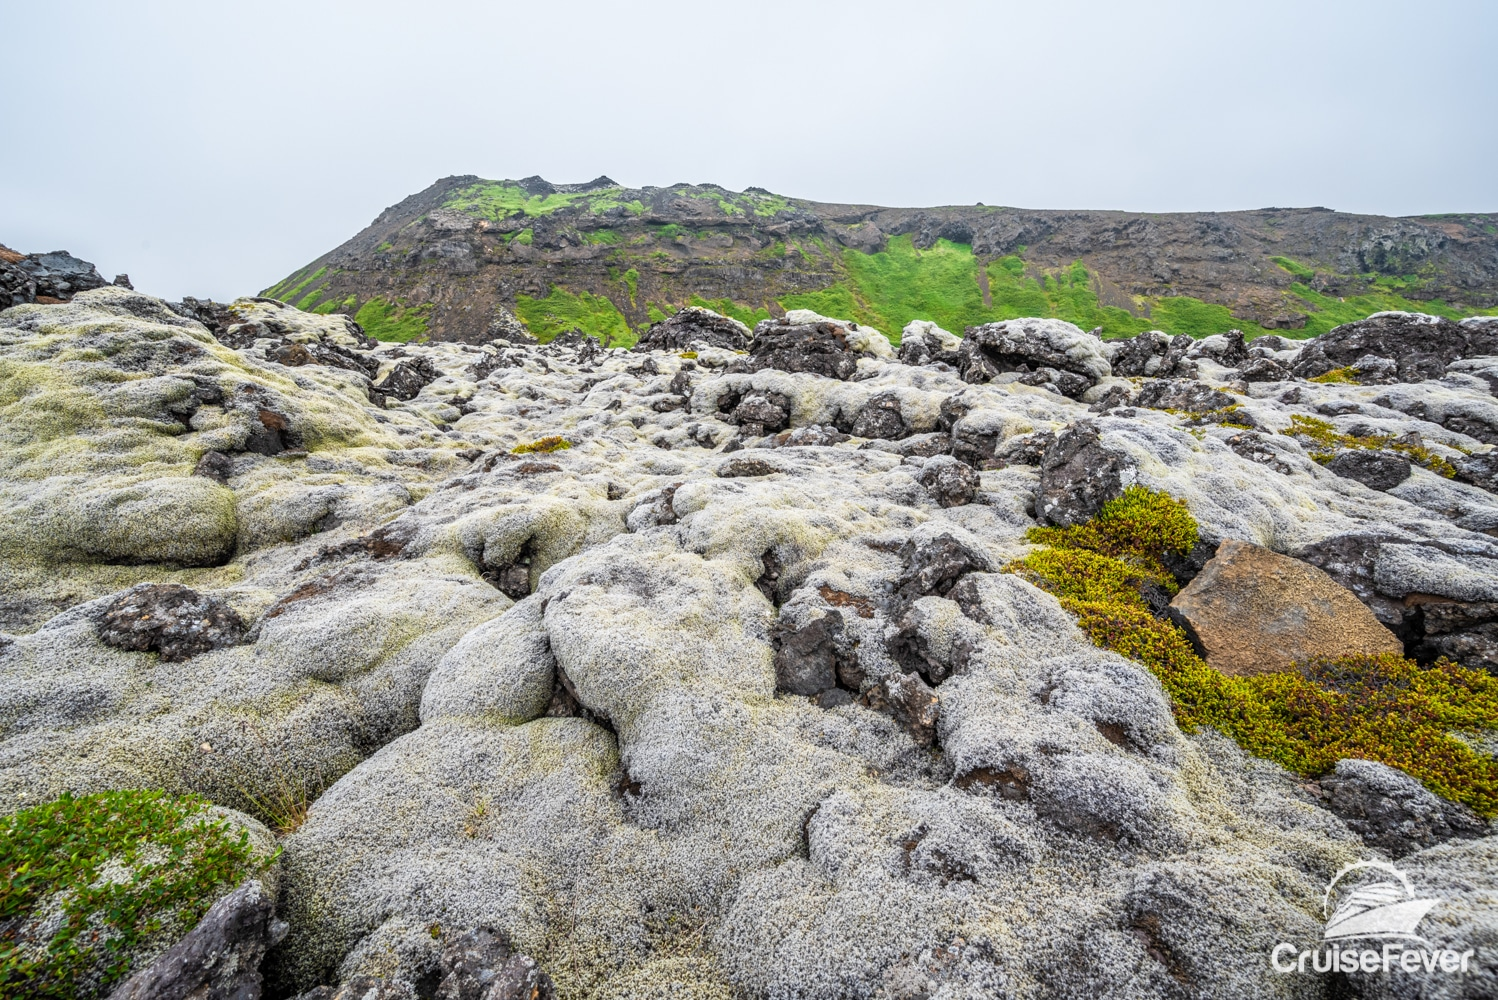 Icelandic volcanic rock covered in moss